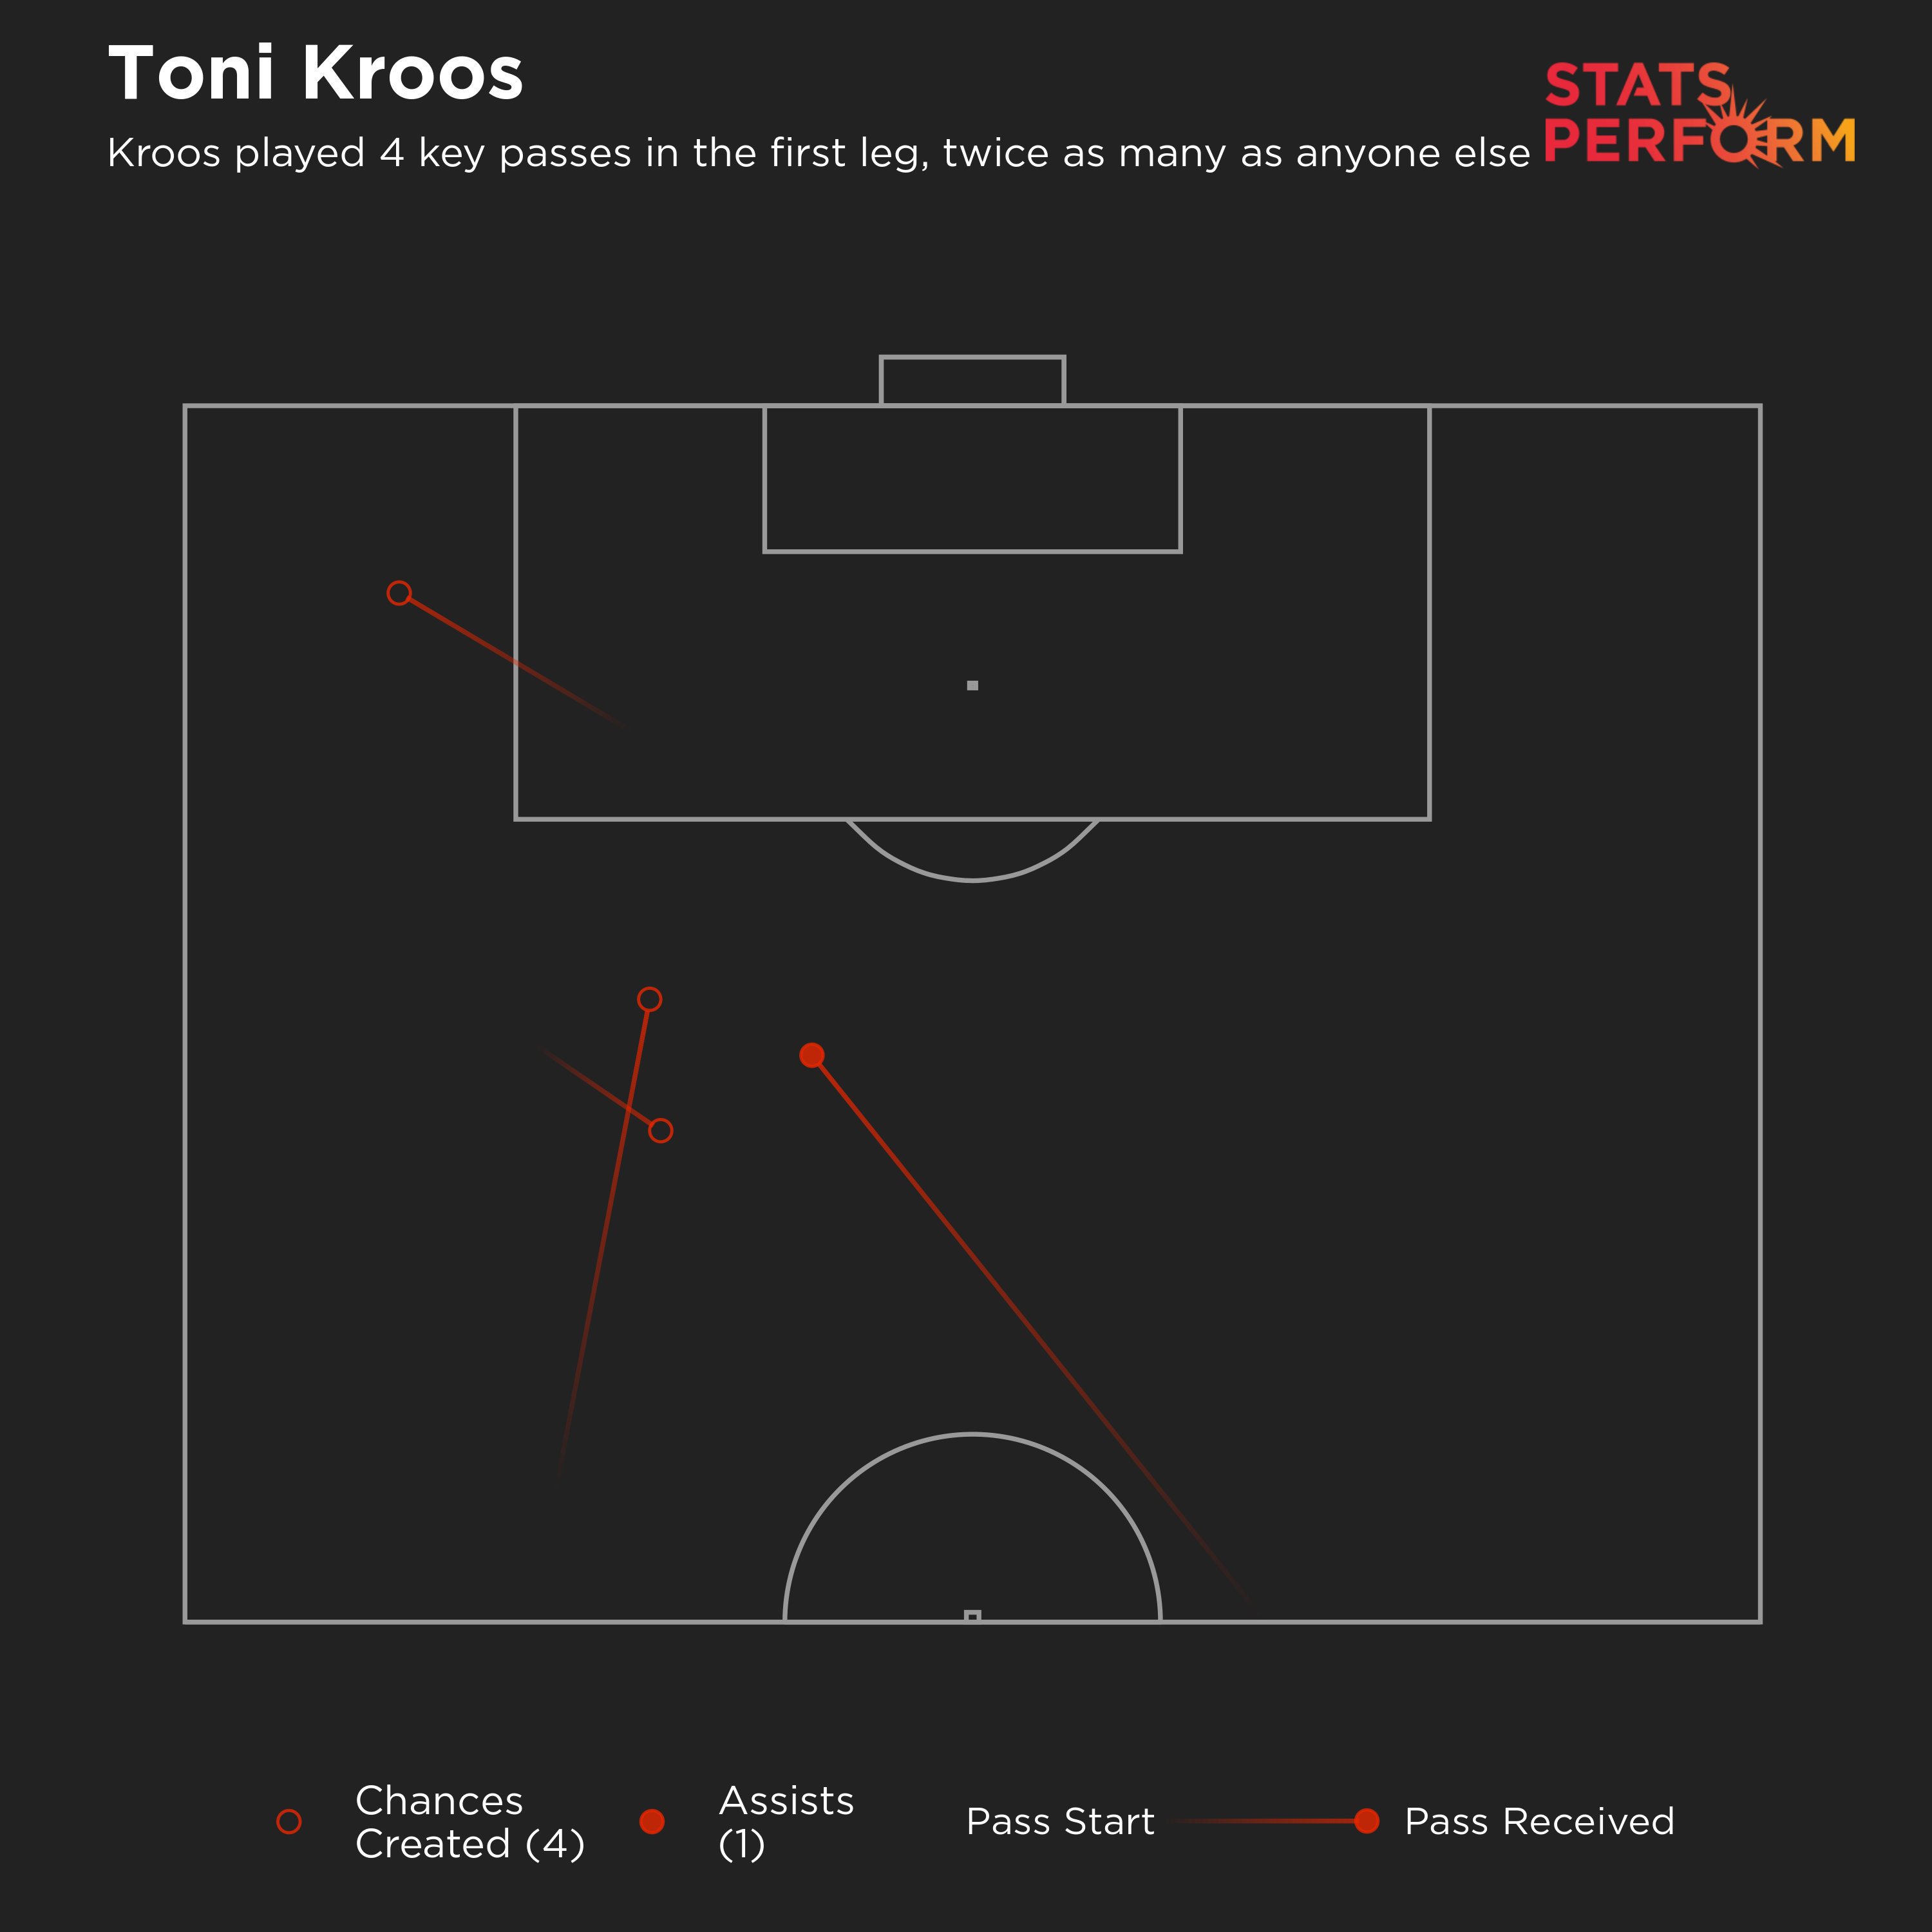 Kroos played four key passes against Liverpool last time, twice as many as anyone else